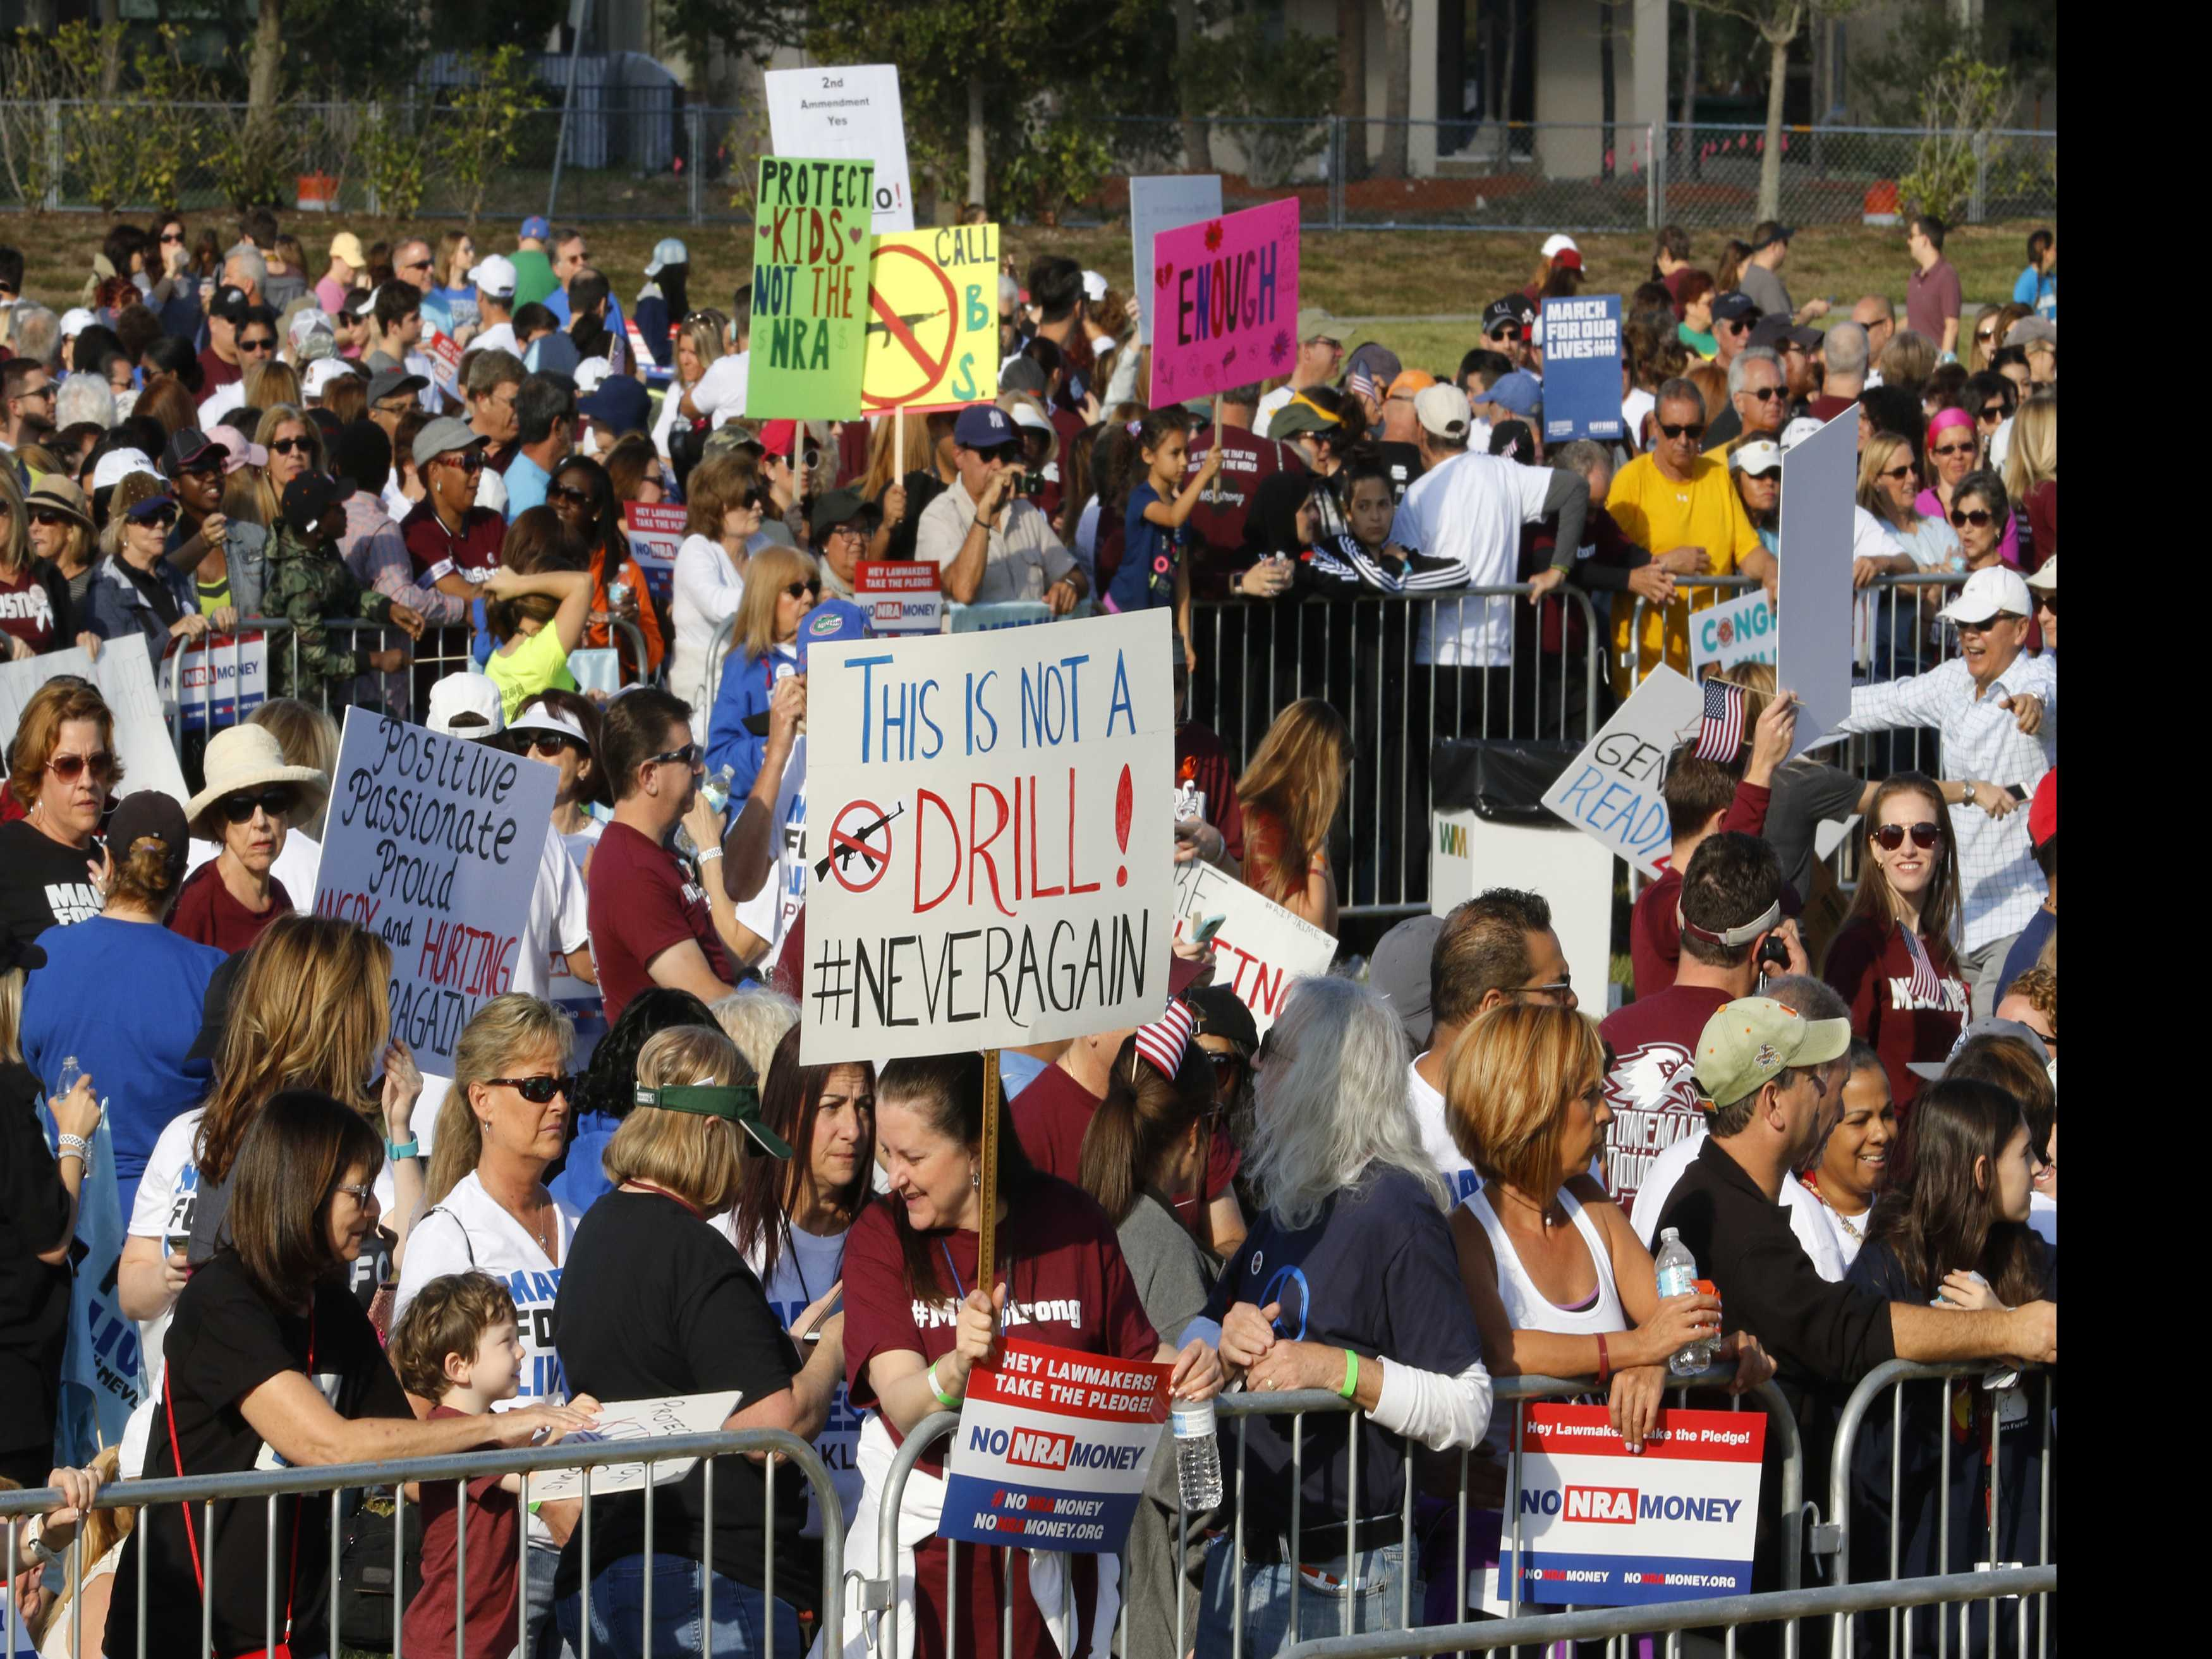 Thousands Gather to March for Gun Control and Spark Activism